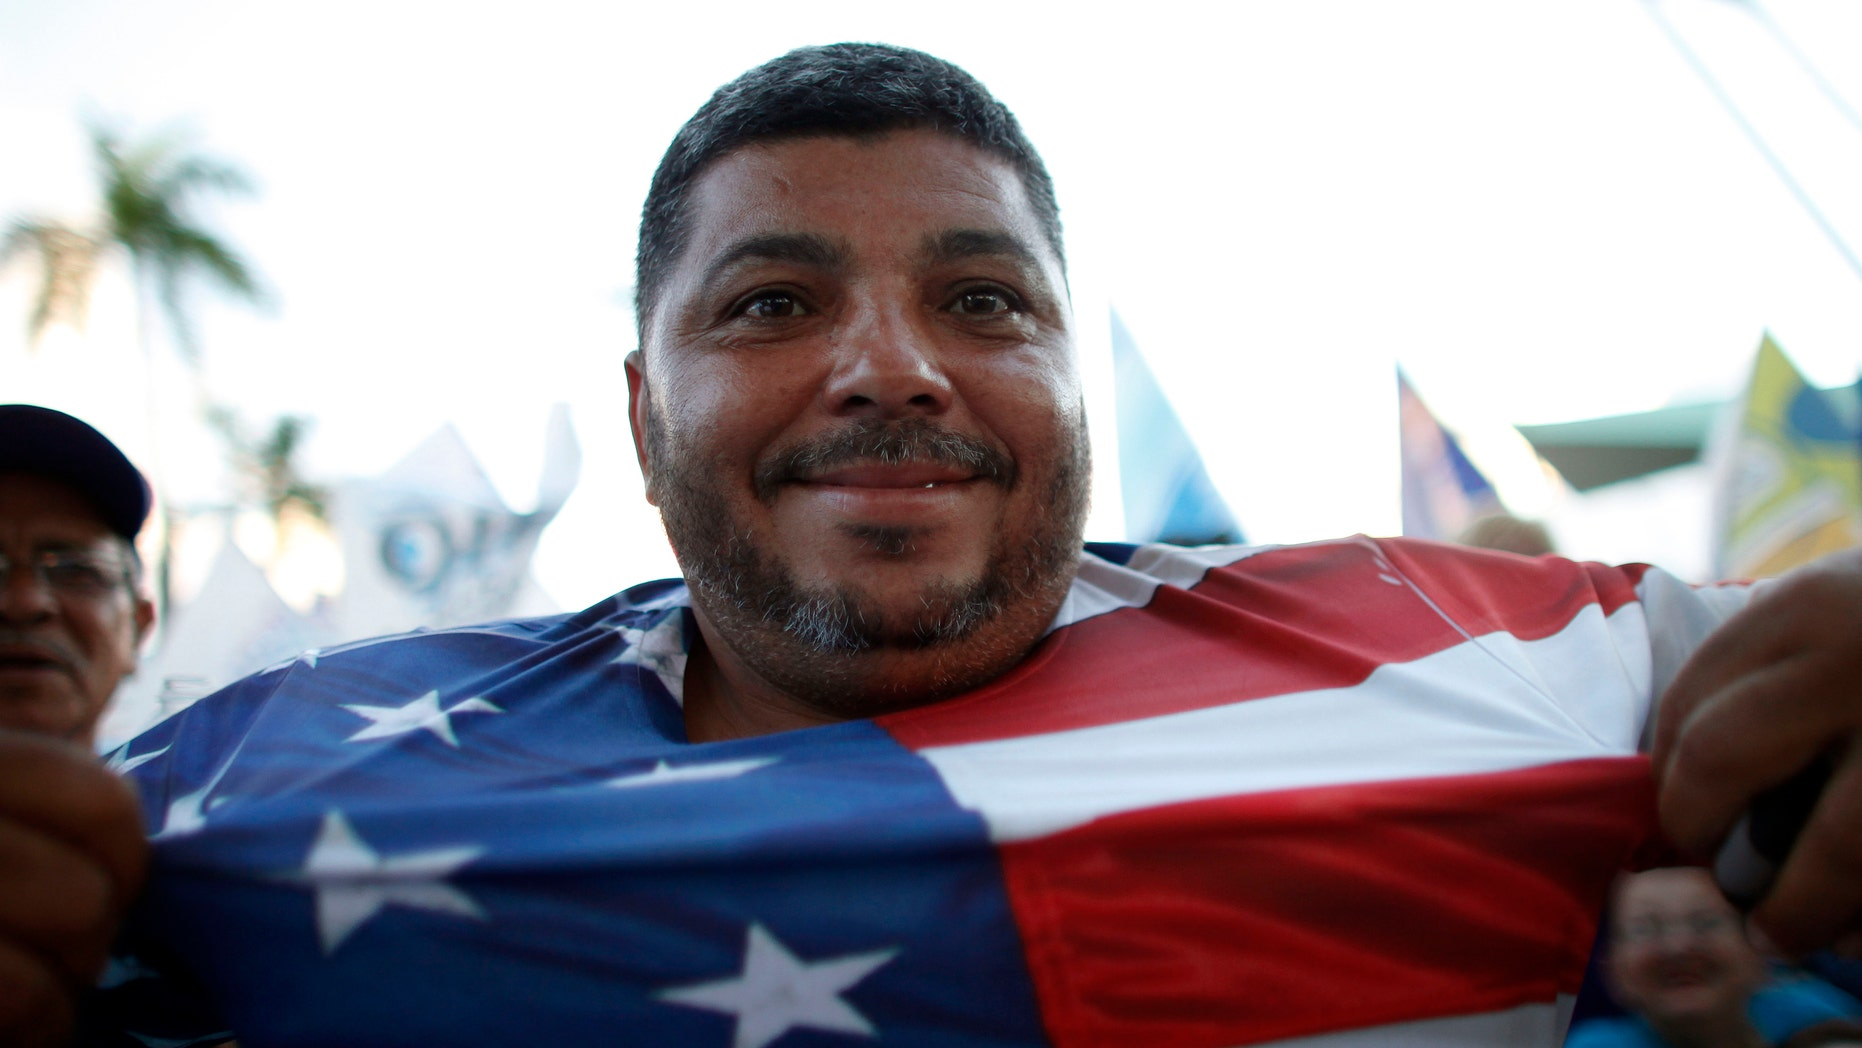 A pro-statehood New Progressive Party supporter shows his T-shirt printed with the U.S. flag at the closing campaign rally for the pro-statehood New Progressive Party in San Juan, Puerto Rico, Saturday, Nov. 3, 2012. (AP Photo/Ricardo Arduengo)